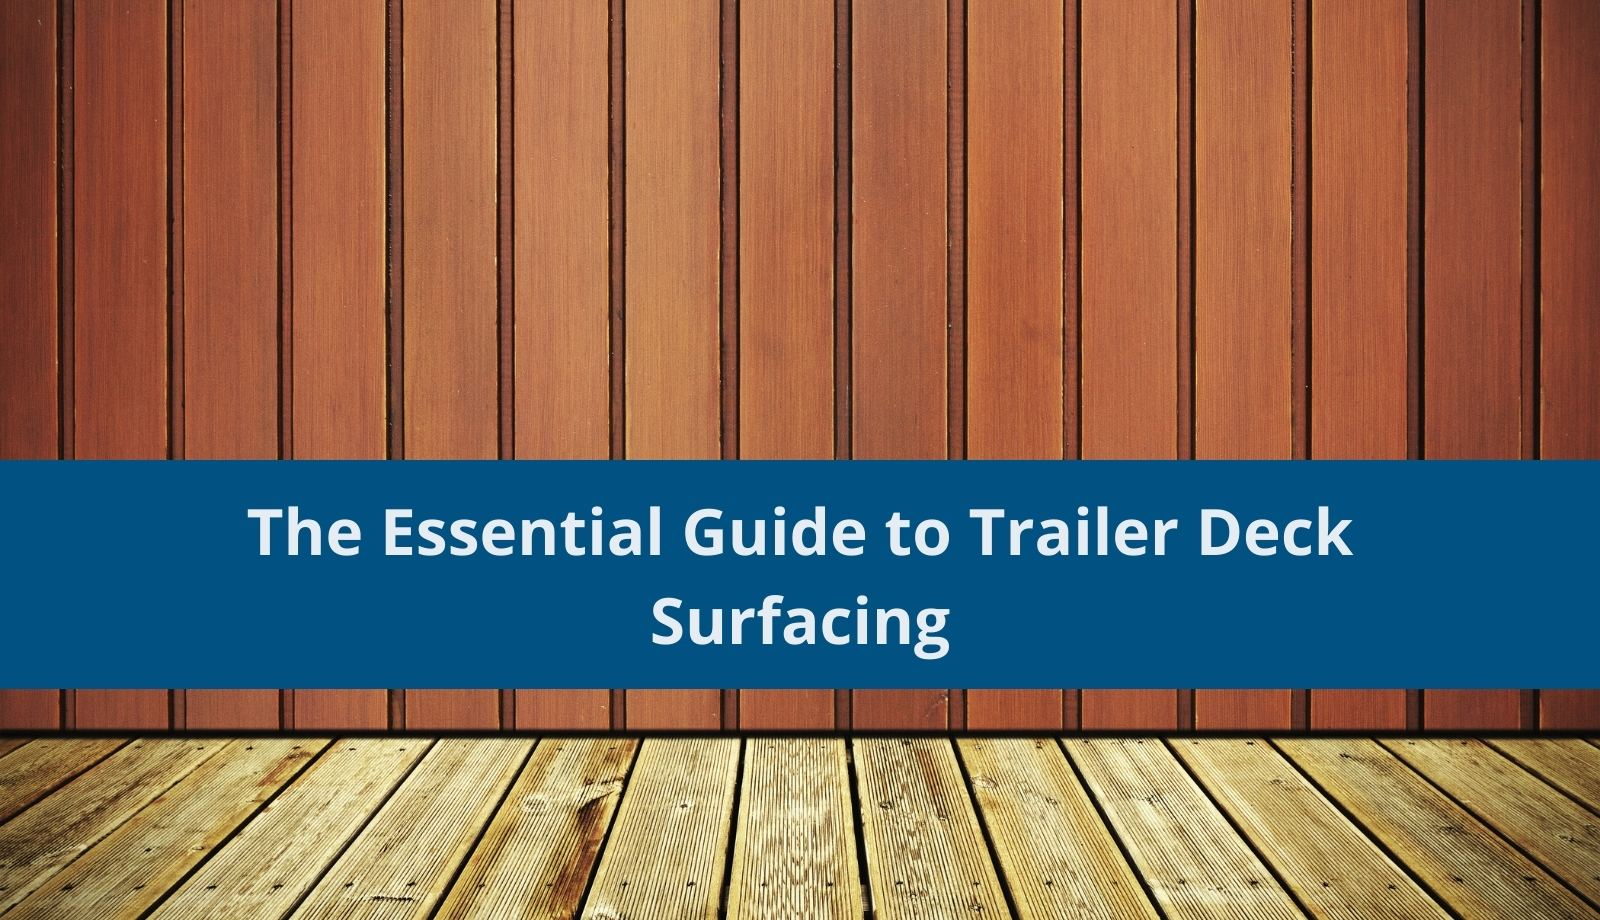 The Essential Guide to Trailer Deck Surfacing